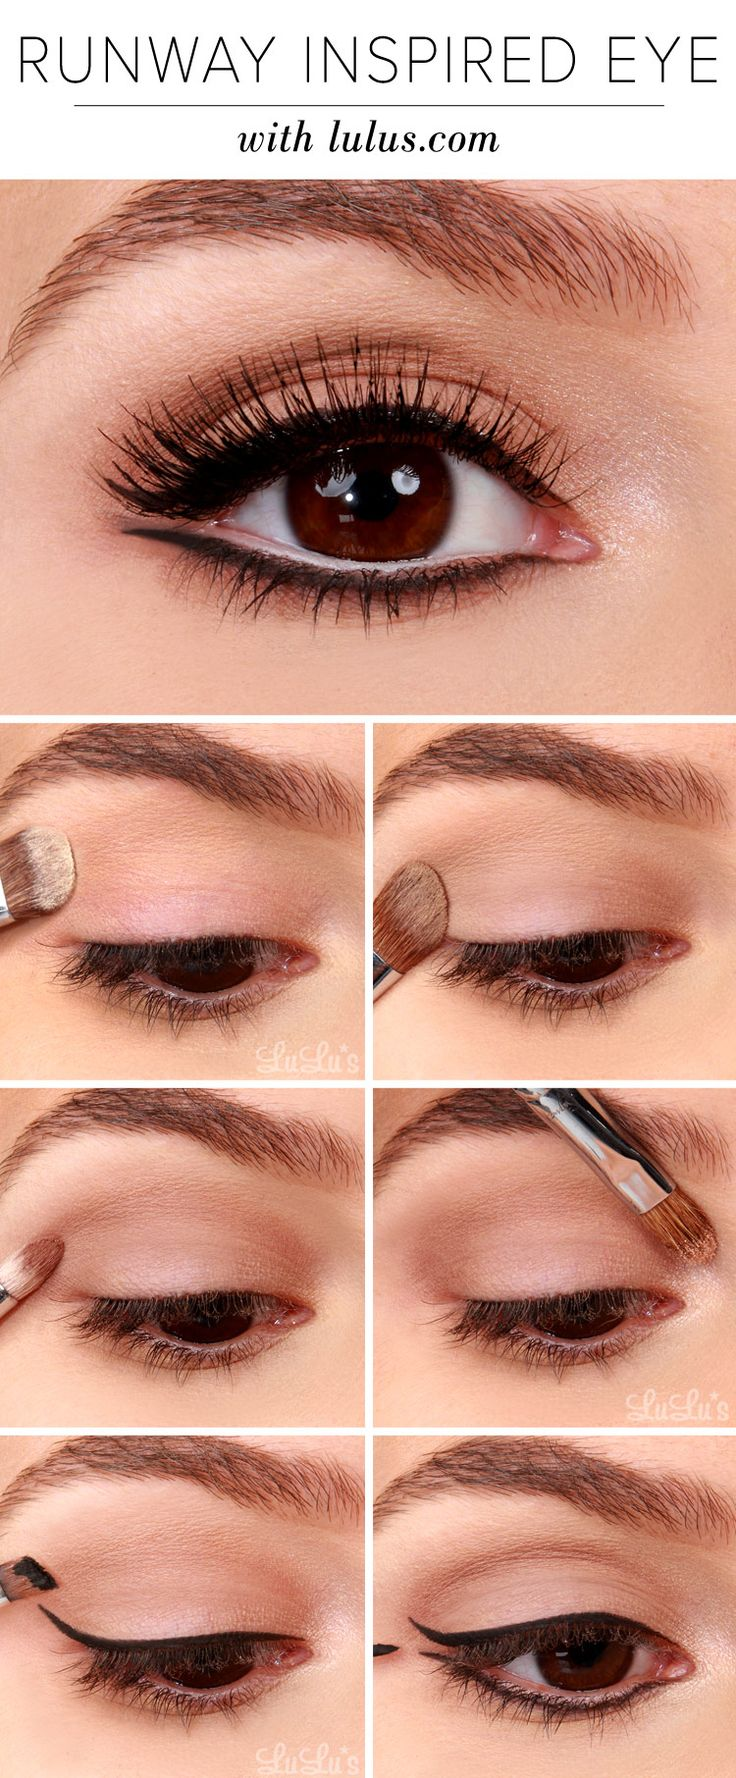 Runway Inspired Black Eyeliner Makeup Tutorial (i've tried this look before and it is so fun!!)